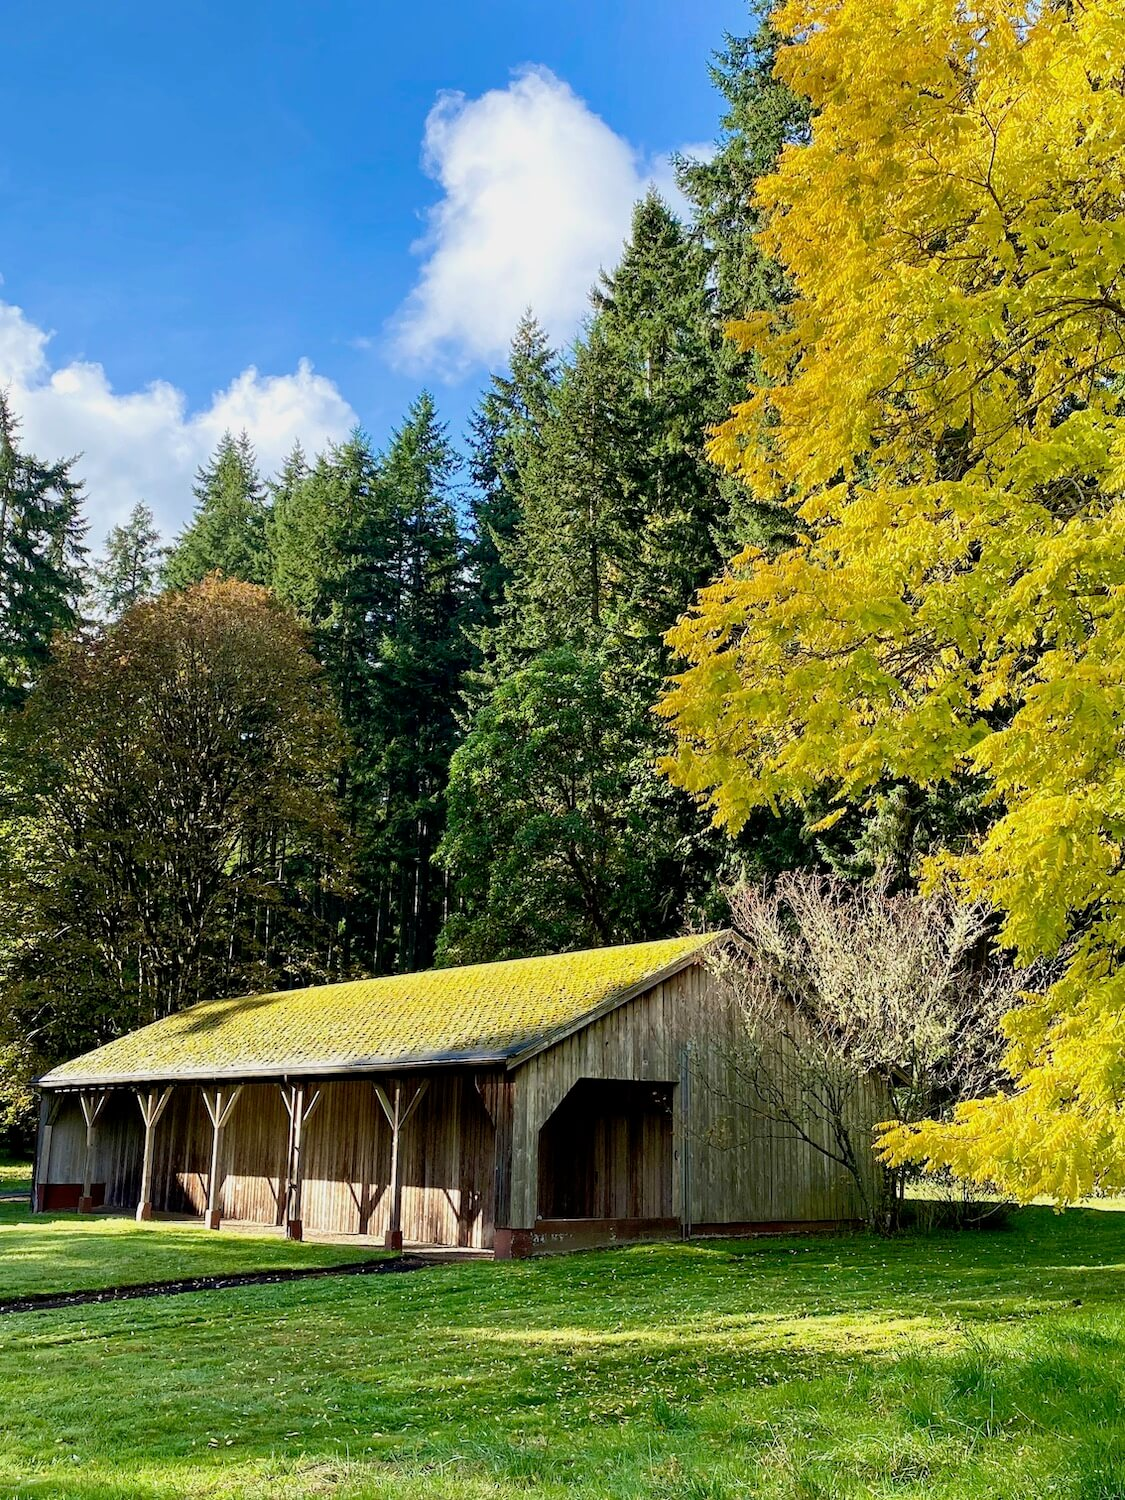 A barn in part of the farming complex of Bloedel Reserve on Bainbridge Island shows a peaceful fall scene. The green grass is trimmed around the old wooden building that has moss growing on the roof. There is a large tree with bright yellow leaves changing for Autumn which stands beside several other fir trees. The sky is bright blue with a few puffy white clouds.